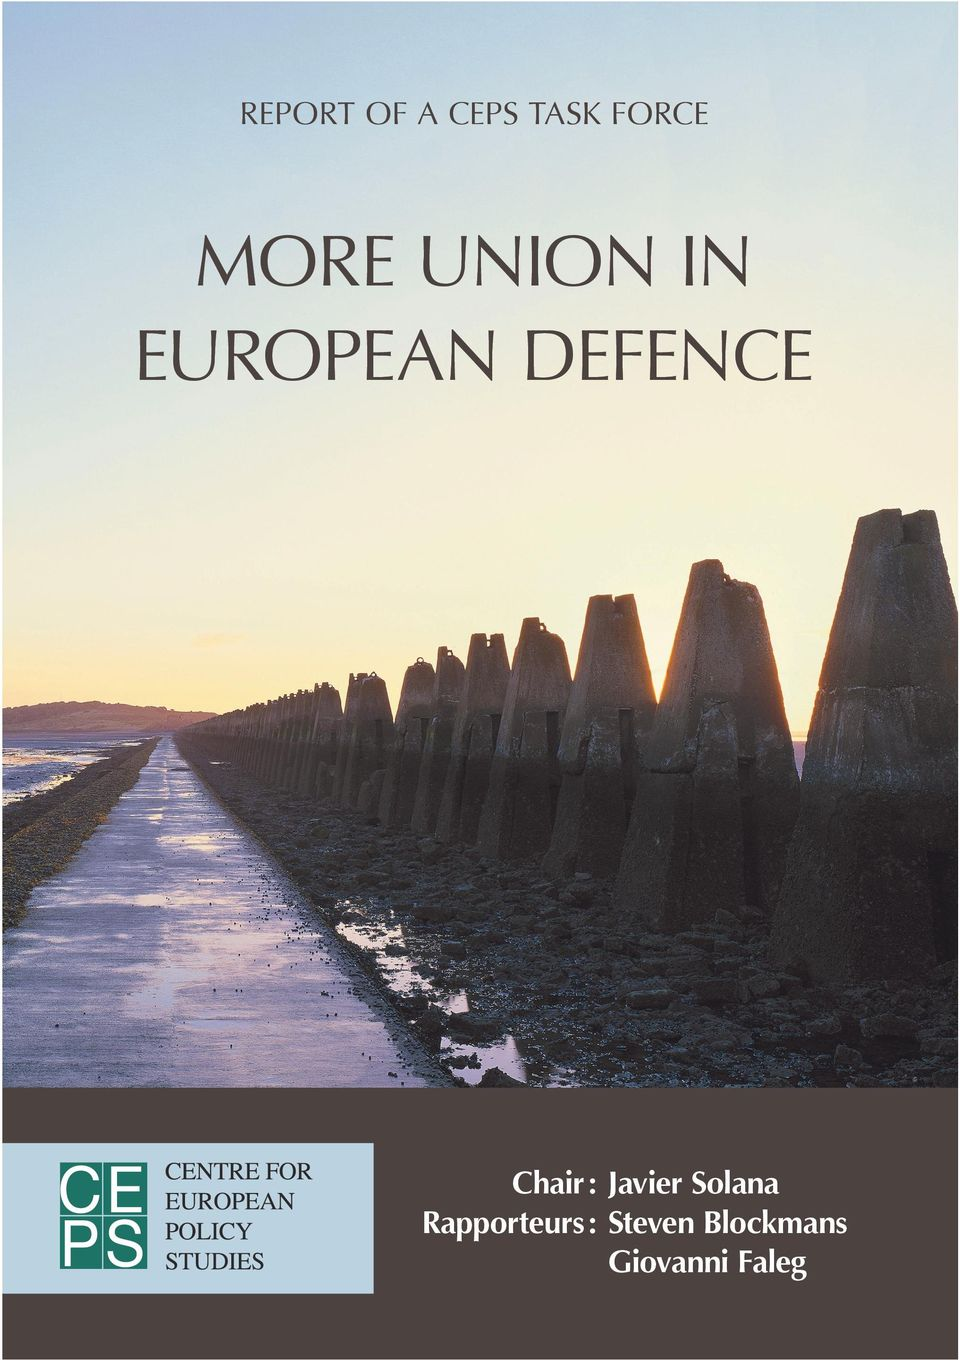 narrative to strengthen defence cooperation in the EU. The Treaty of Lisbon demands and permits a great deal more in terms of our common security and defence activities.